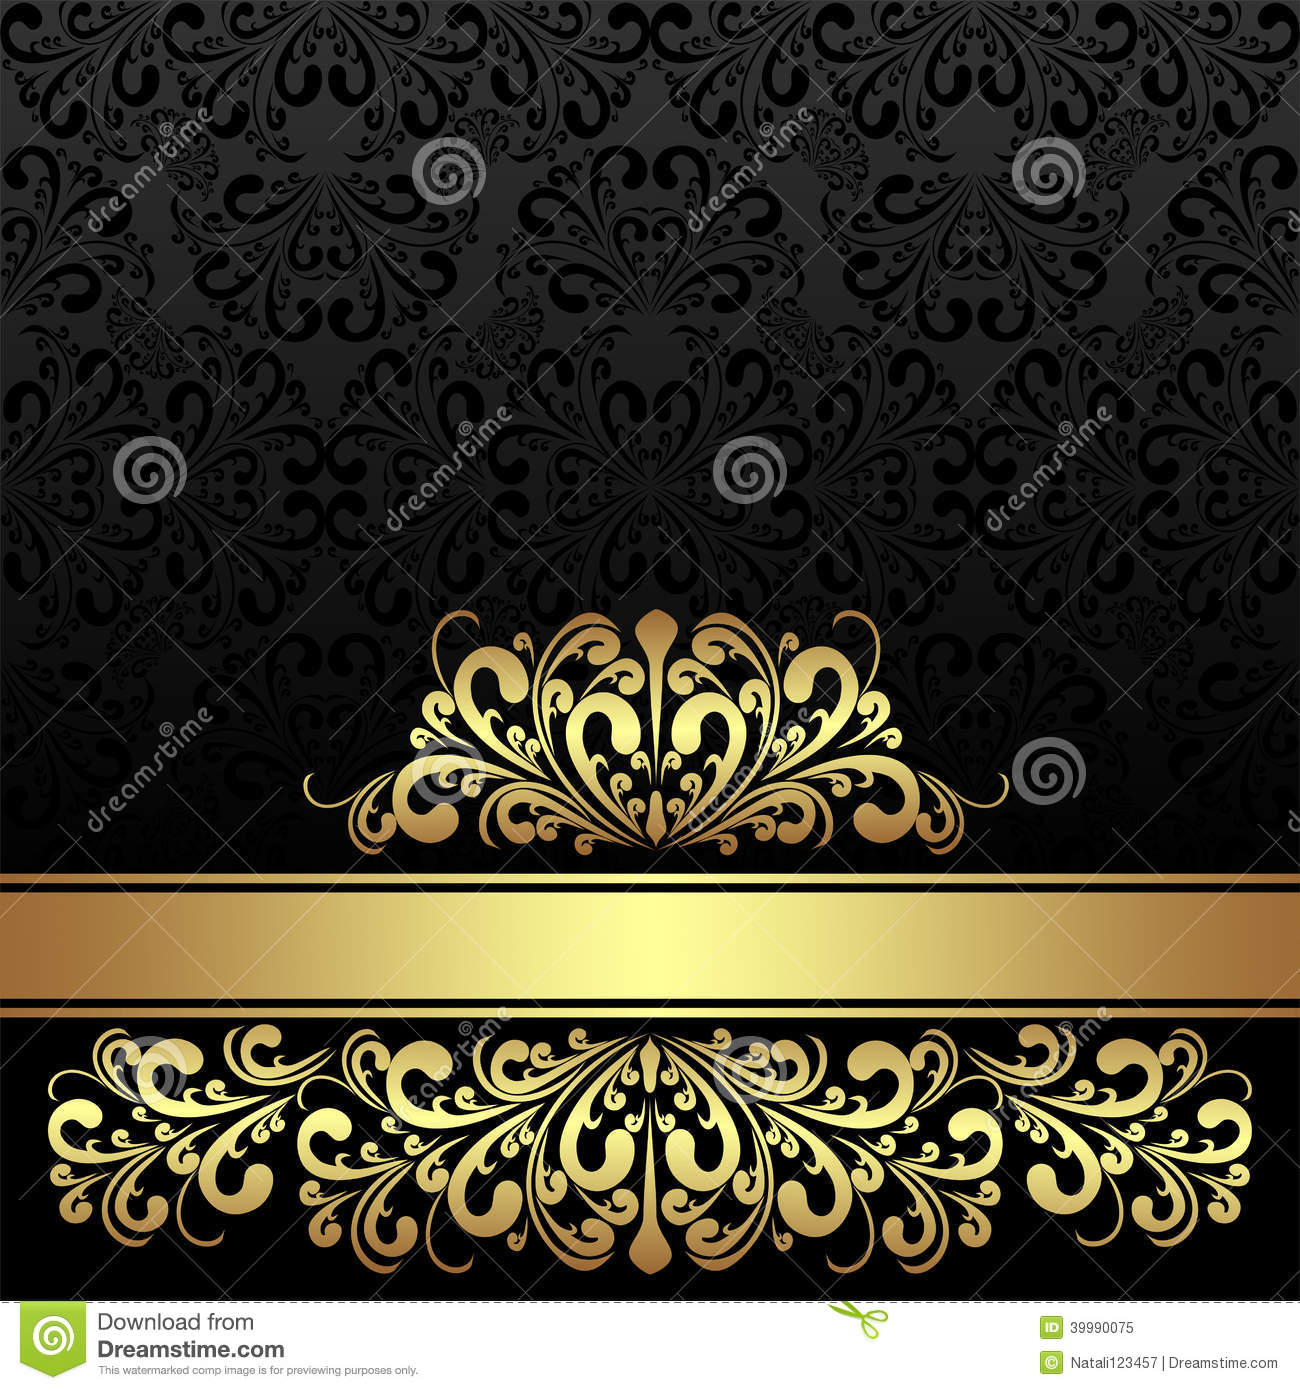 Rich Ornamental Black Background With Golden Royal Border